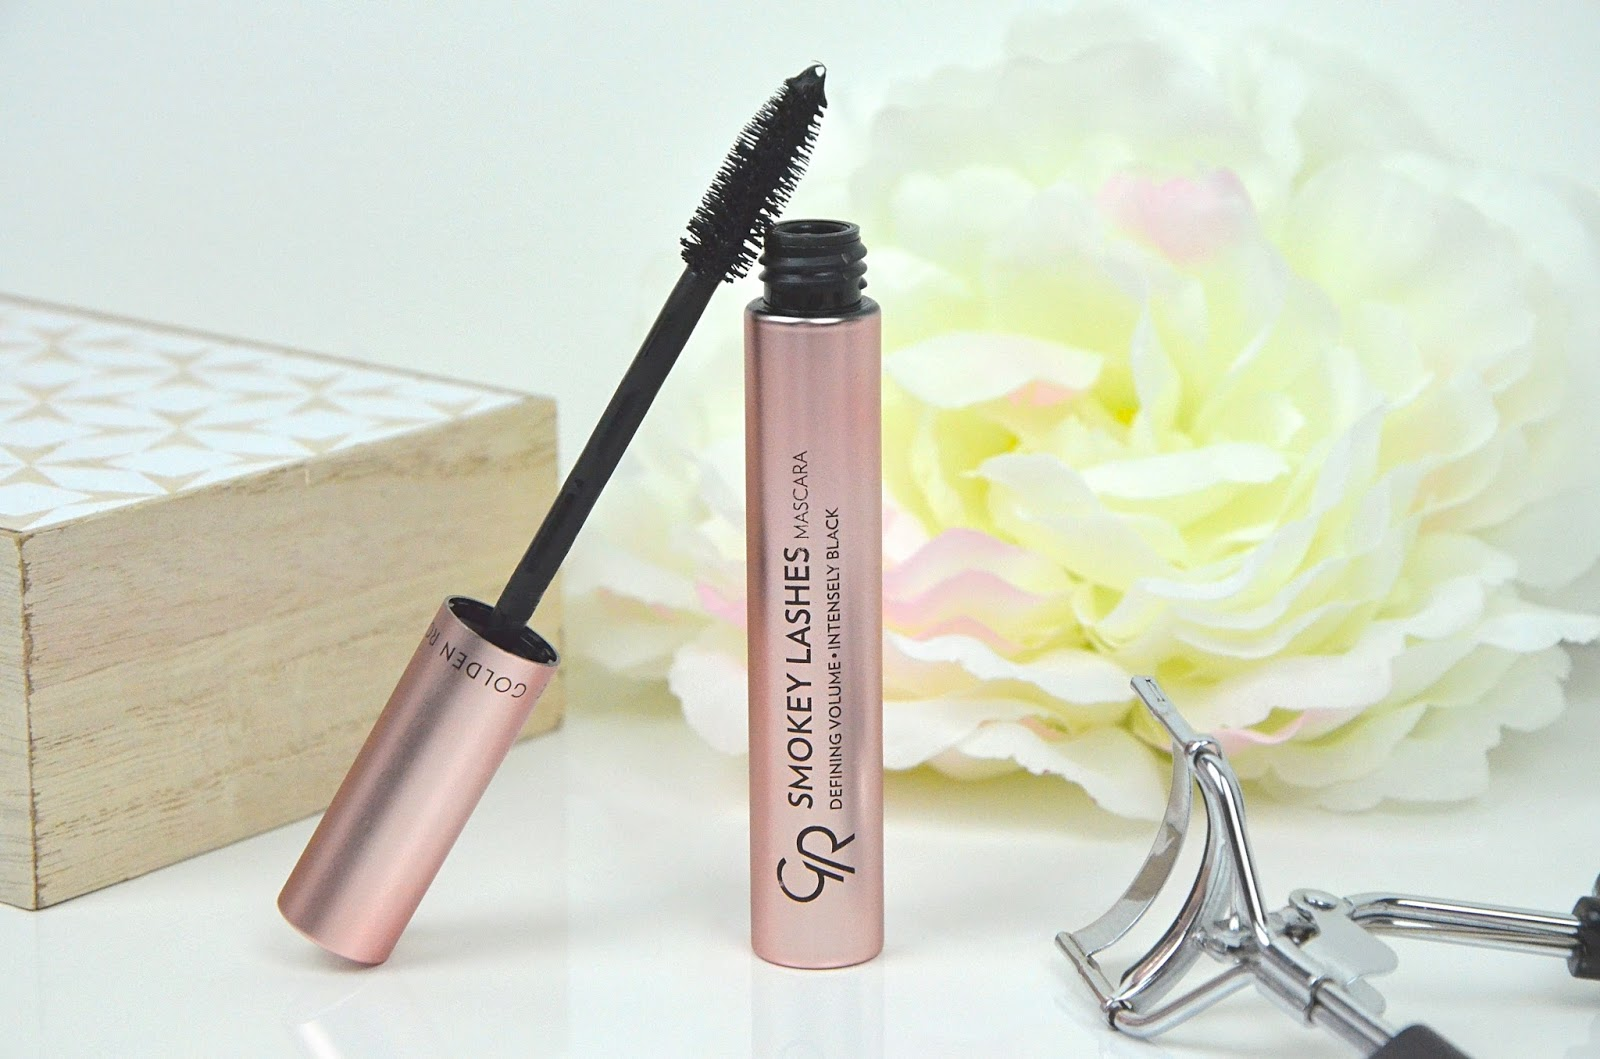 Le mascara smokey lashes de golden rose